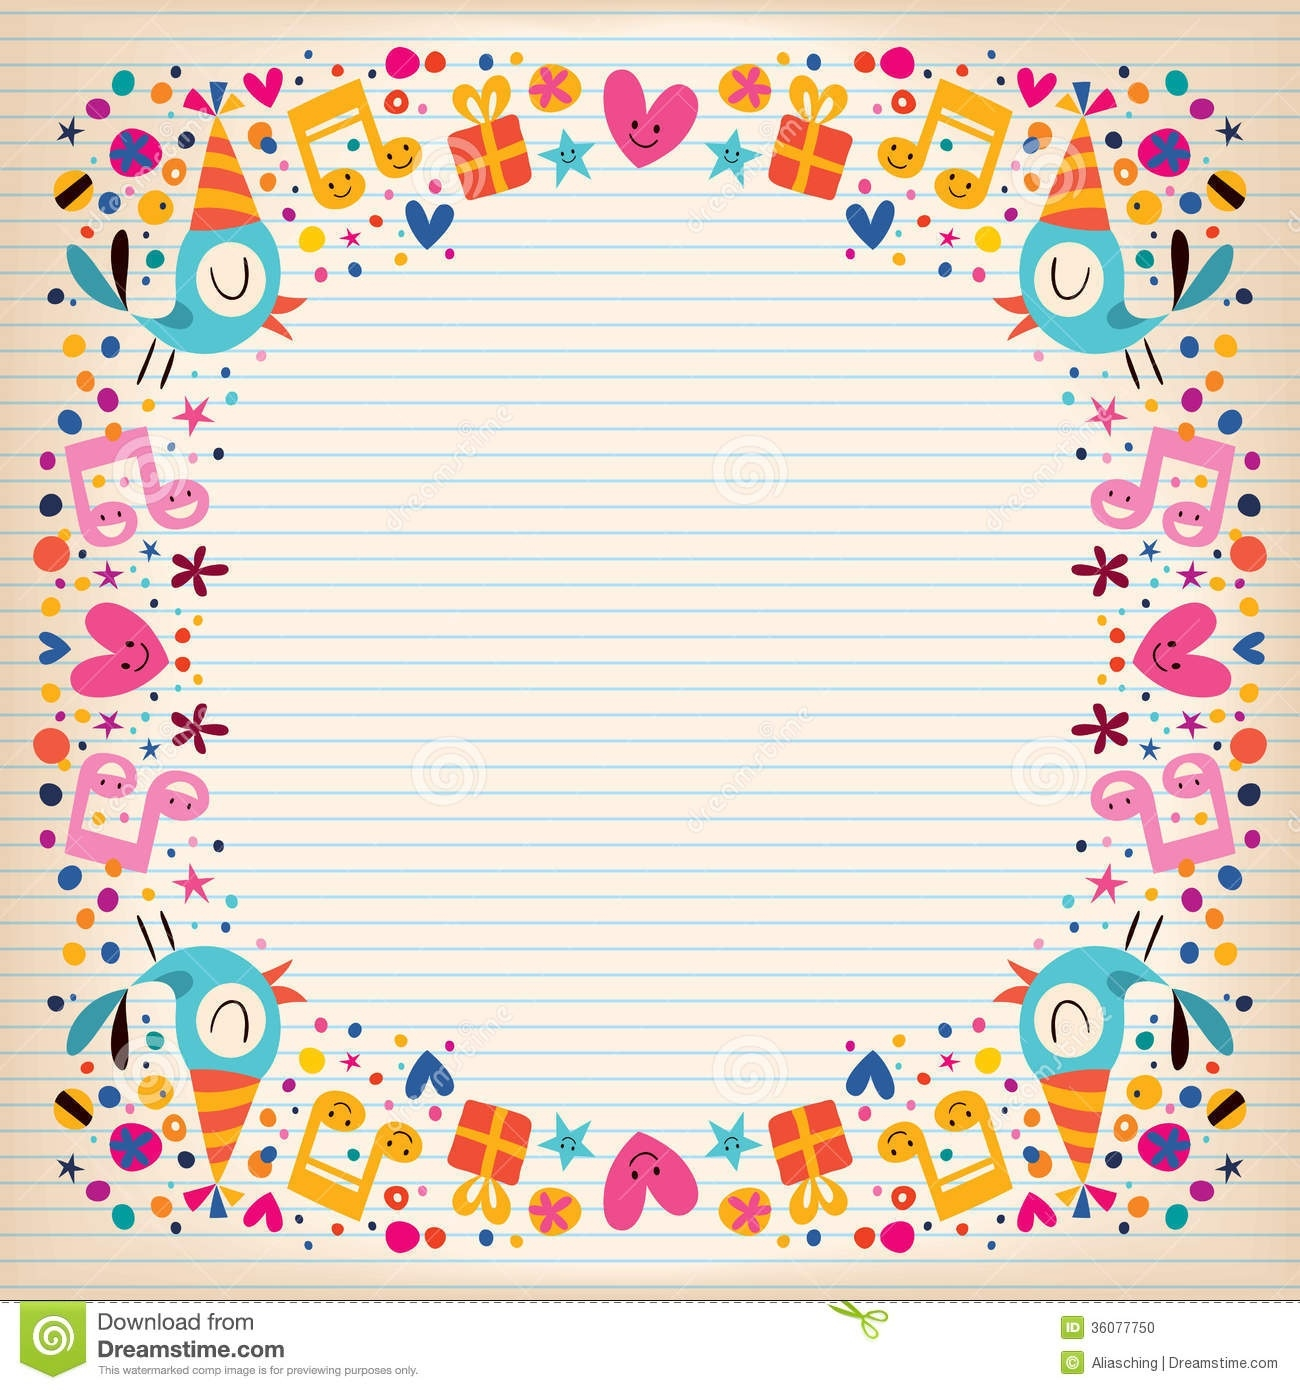 birthday border template ; happy-birthday-border-lined-paper-card-stock-vector-image-36077750-regarding-lined-paper-for-kids-with-border